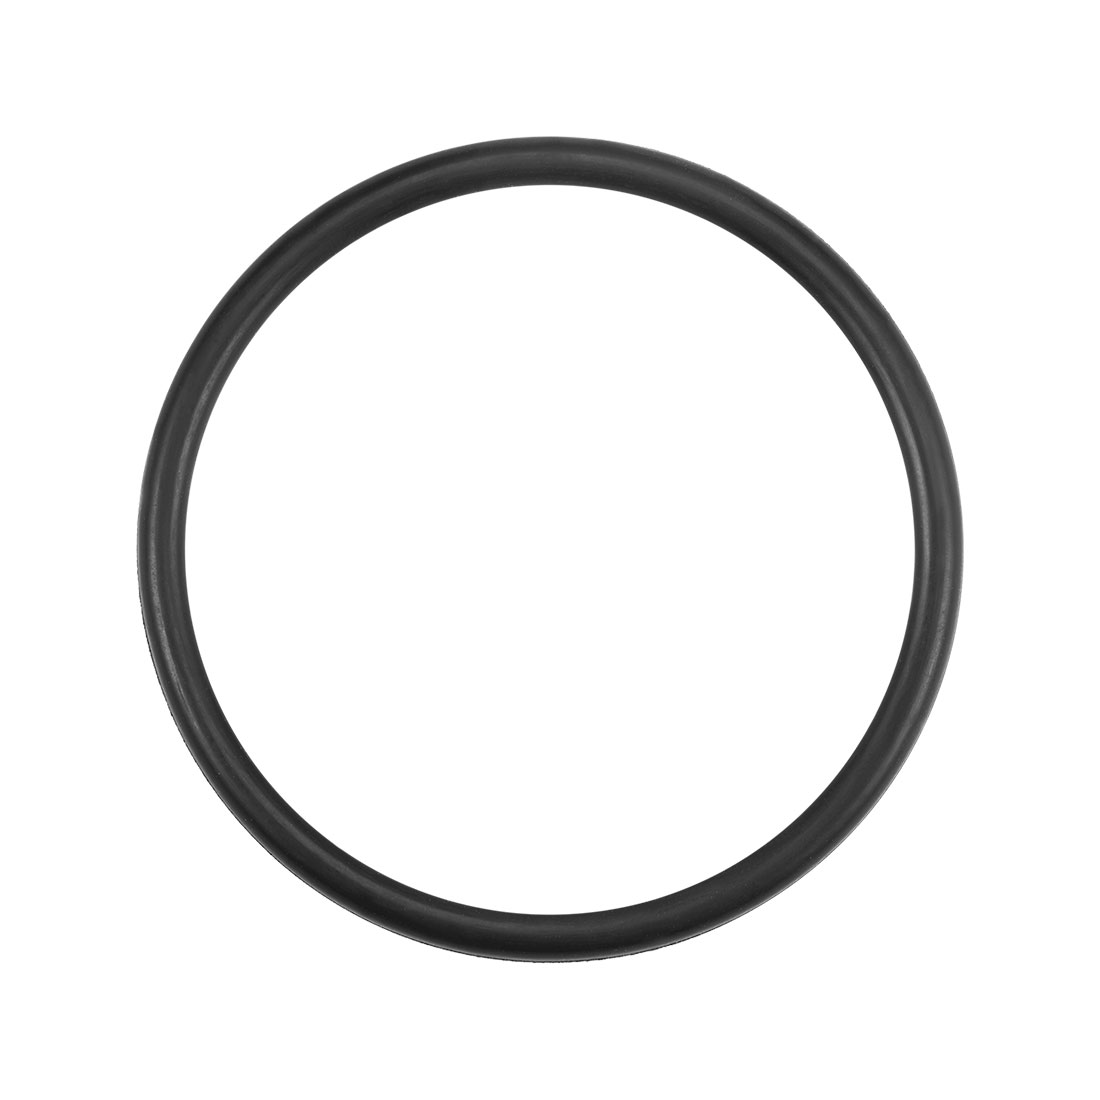 O-Rings Nitrile Rubber 54mm x 62mm x 4mm Round Seal Gasket